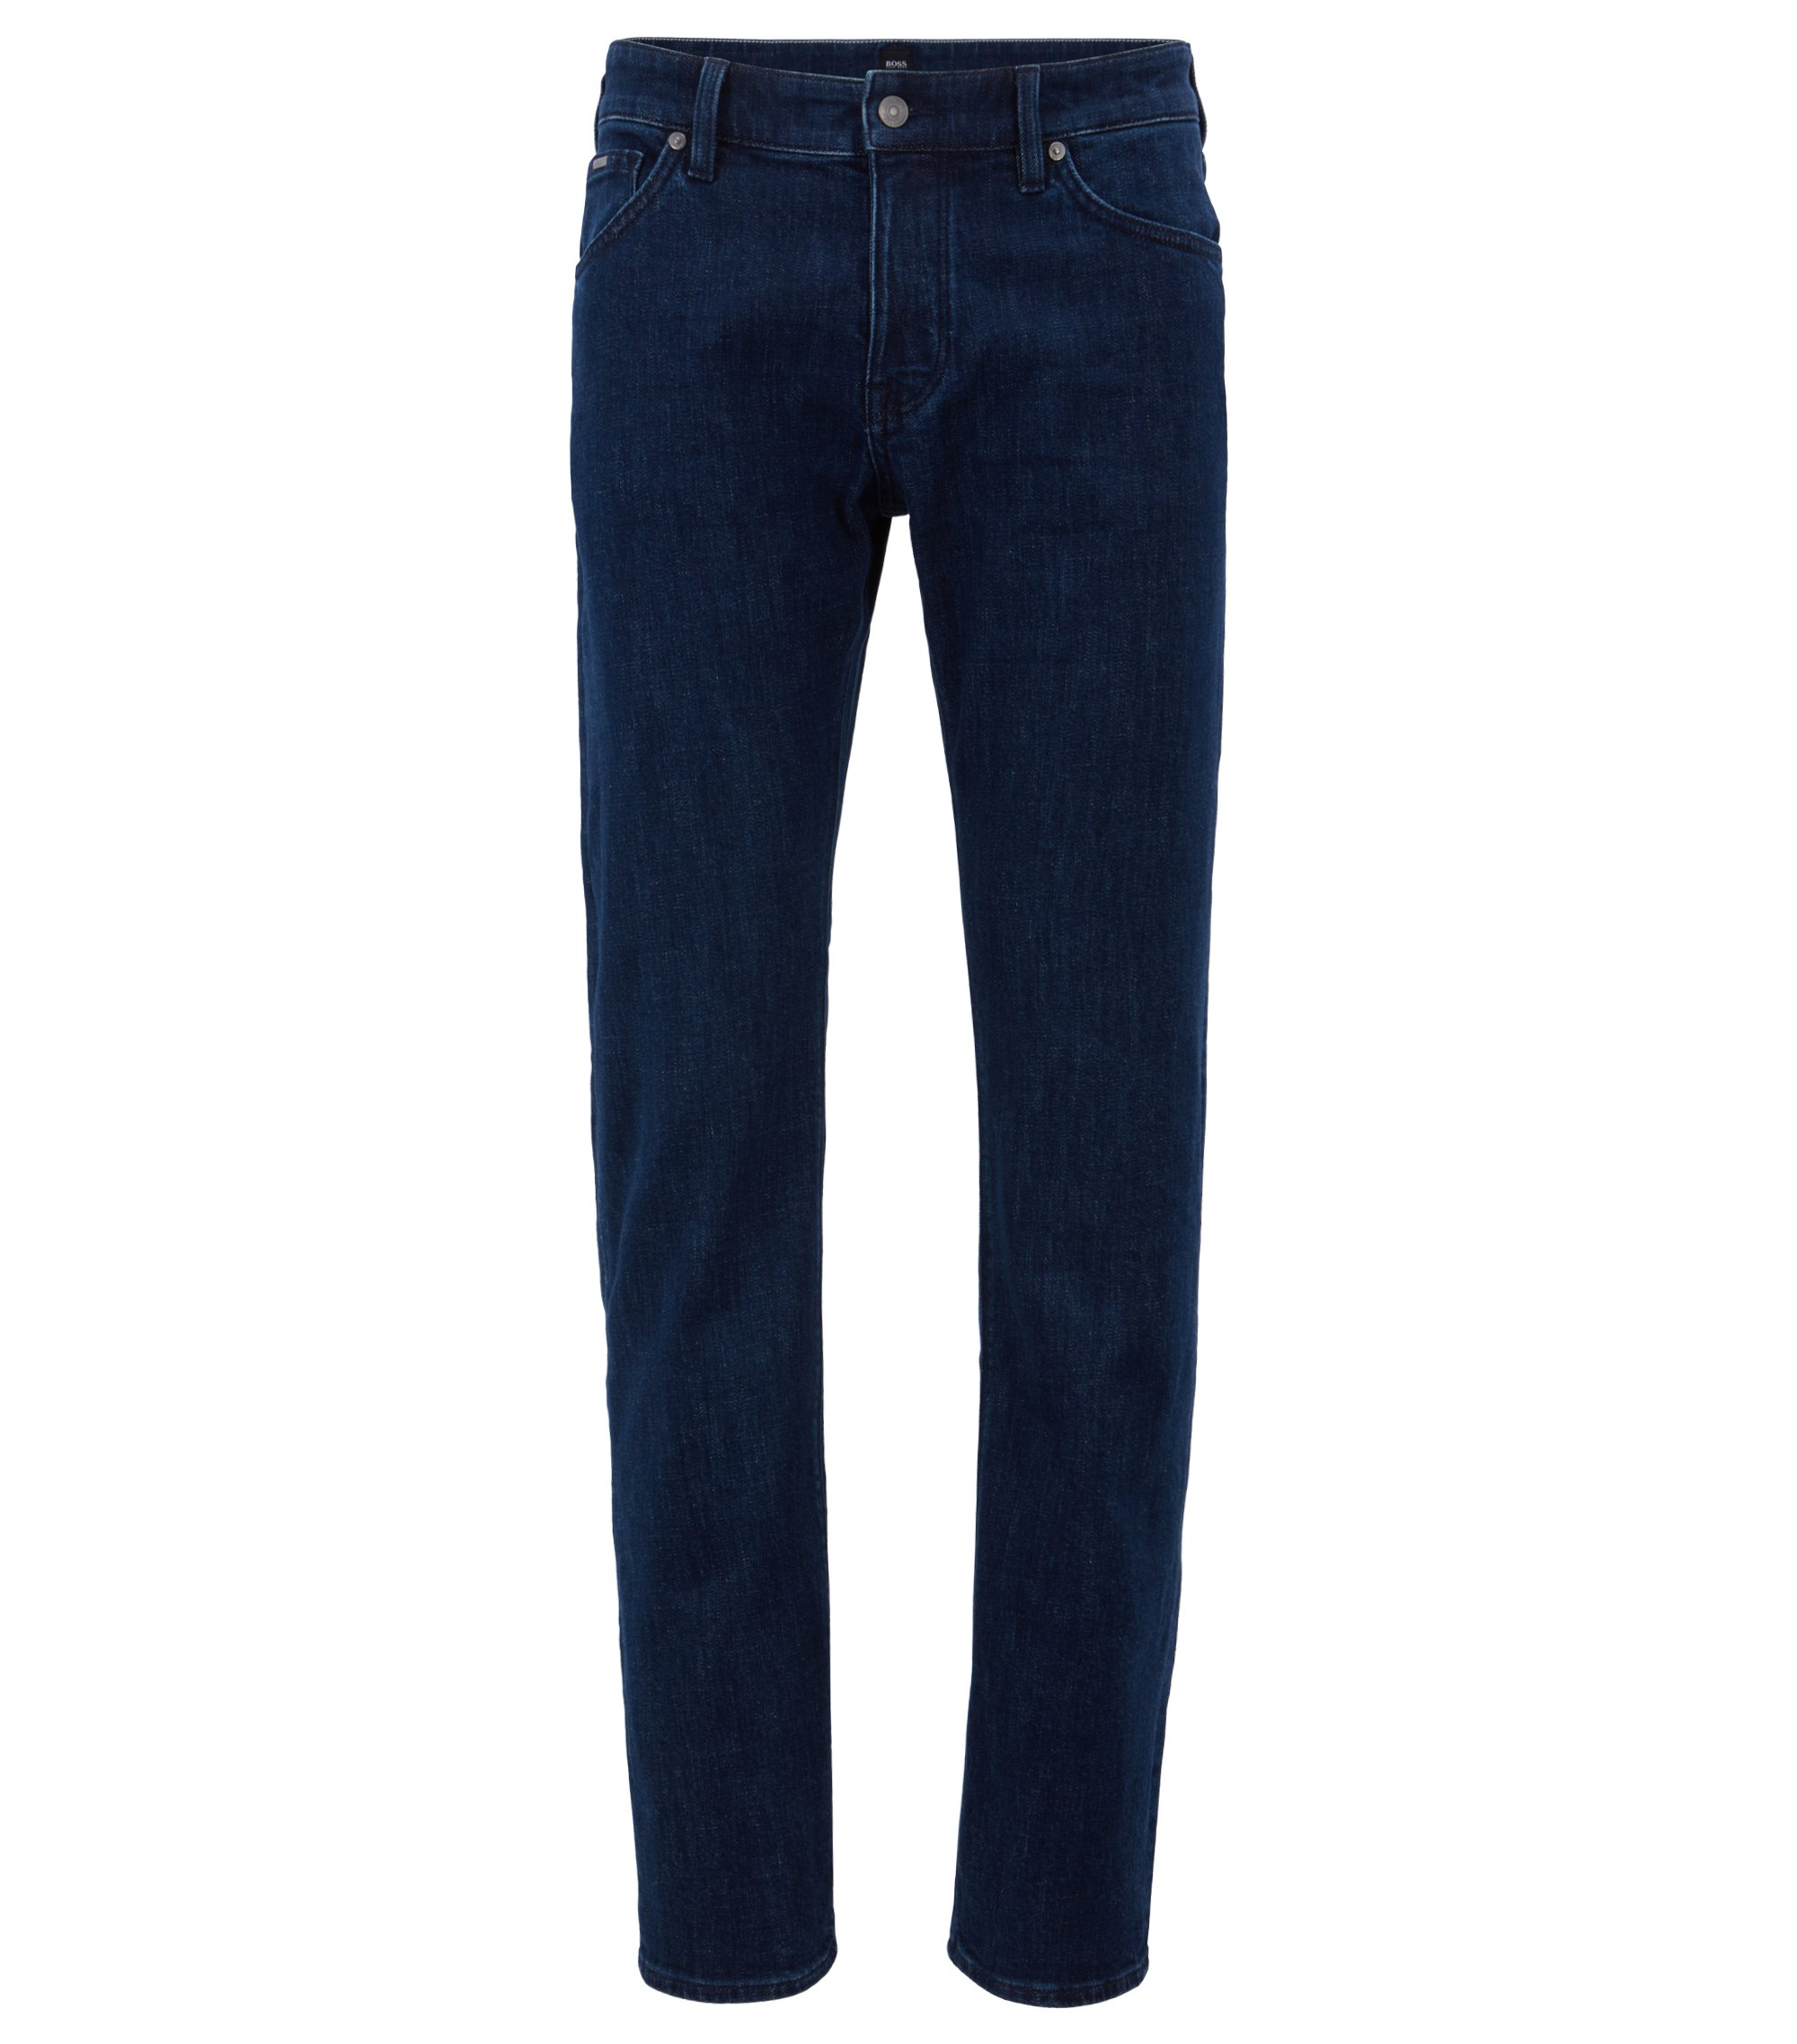 Jeans regular fit in comodo denim elasticizzato blu navy, Blu